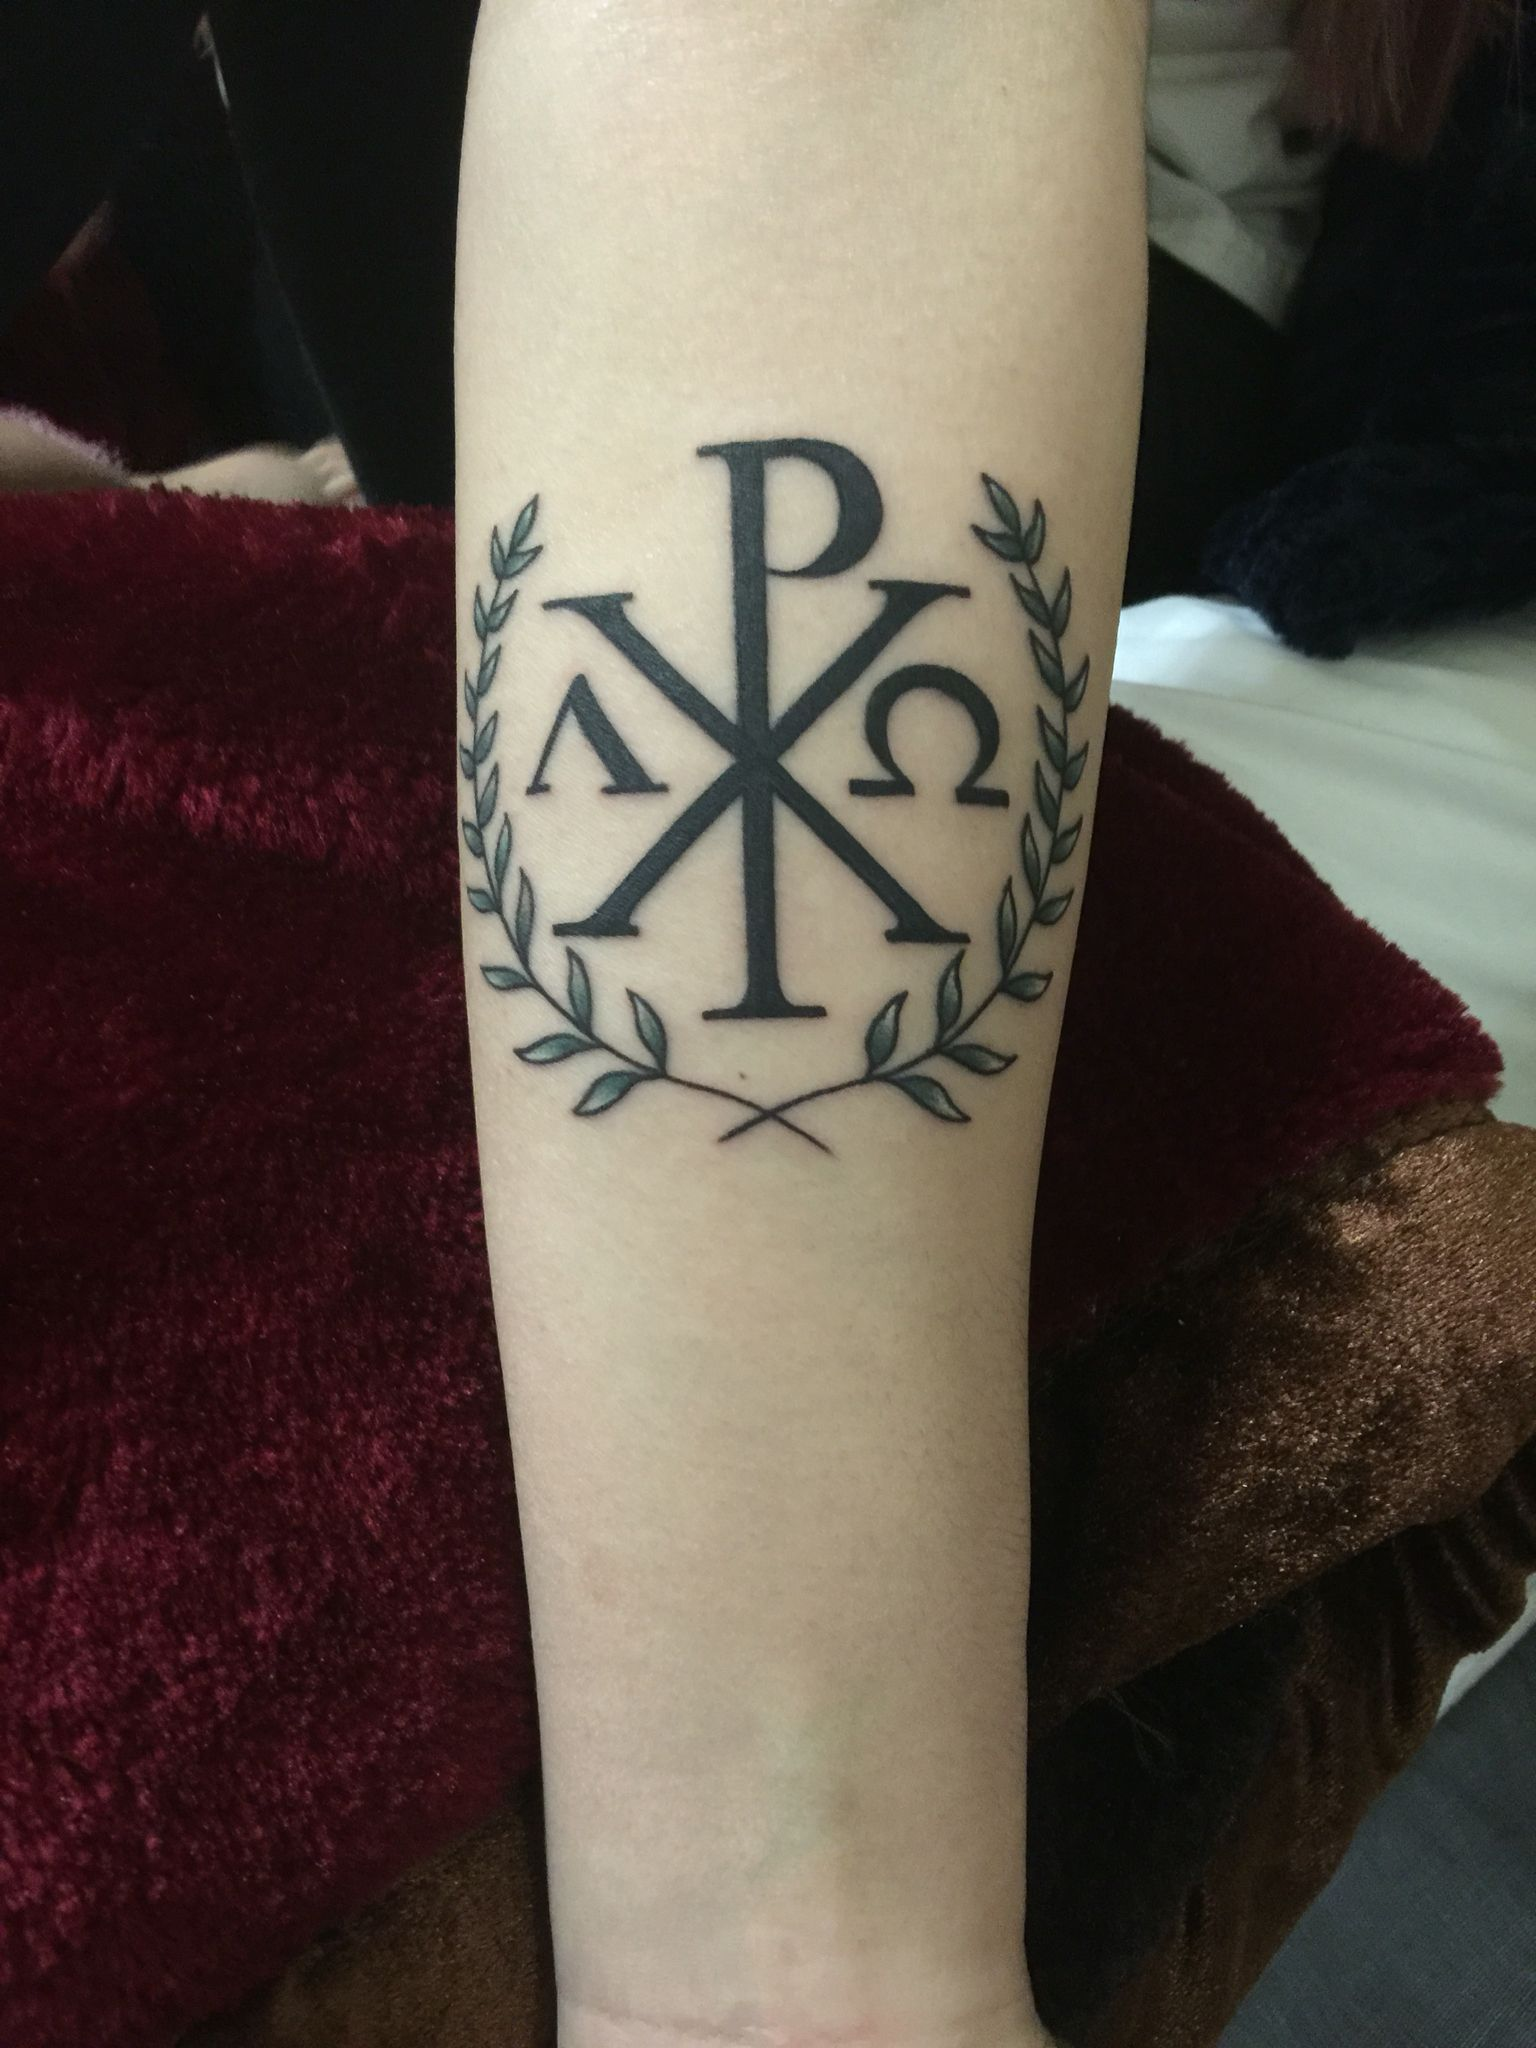 Chi rho alpha and omega taino indian tattoos pinterest chi chi rho alpha and omega buycottarizona